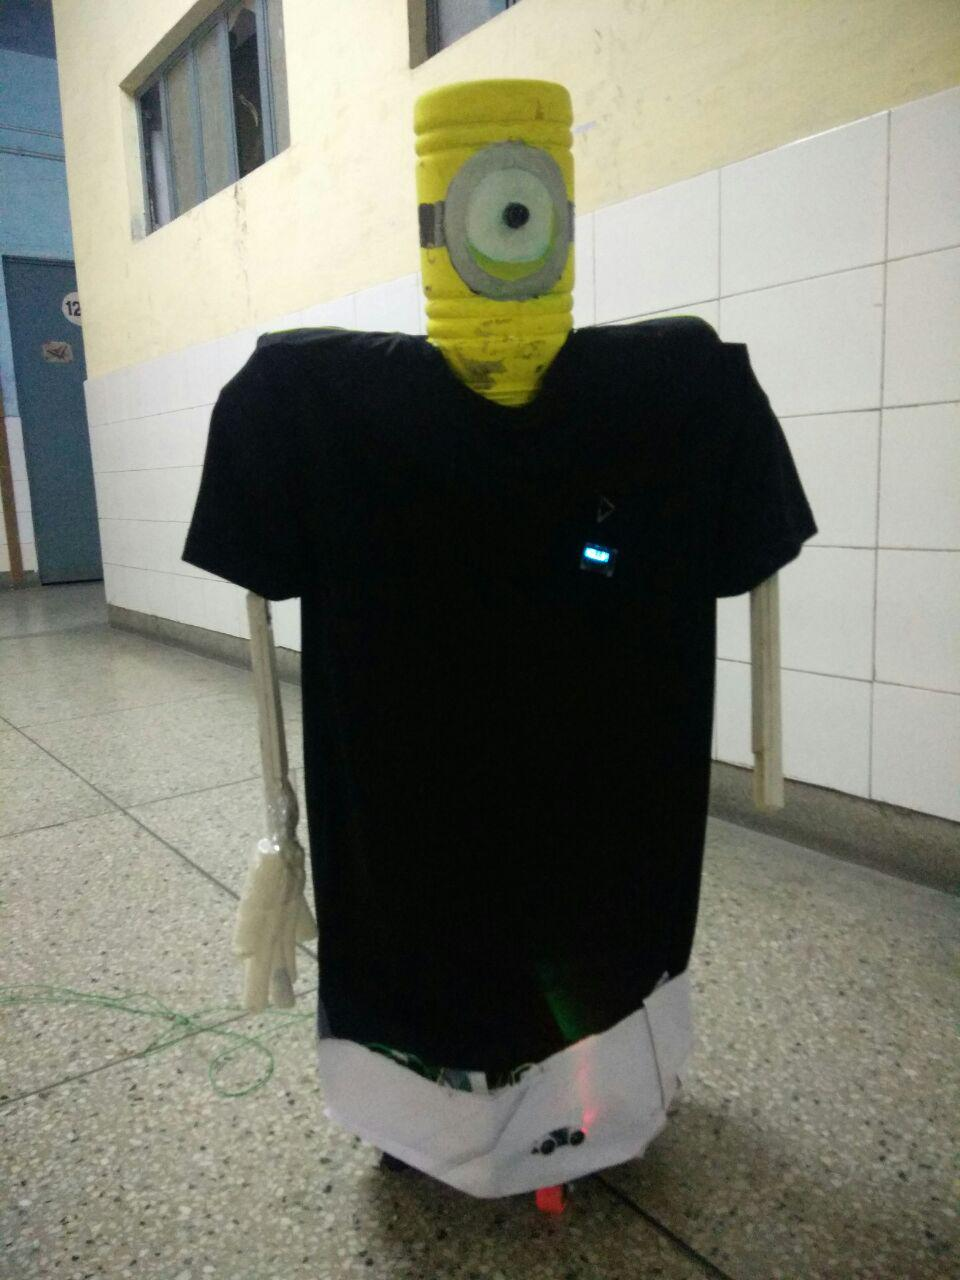 Picture of NAIN 1.0 - the Basic Humanoid Robot Using Arduino